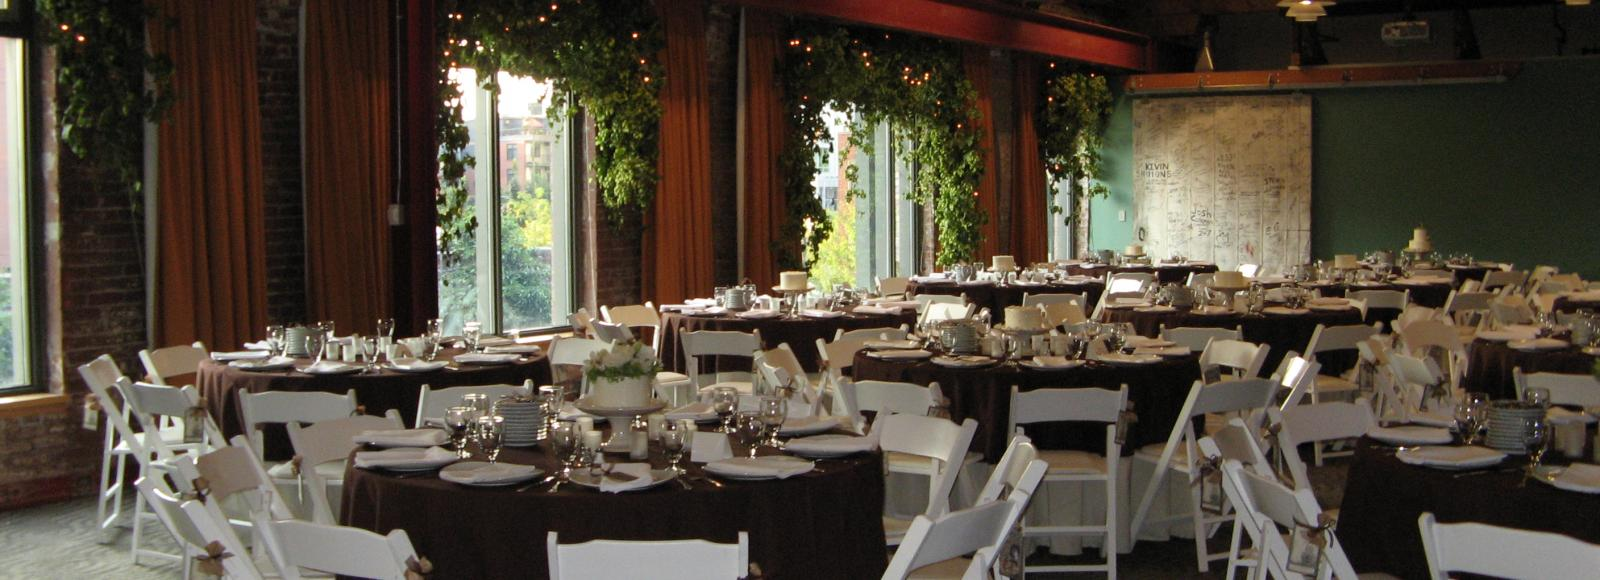 Conference room set up with 20 white tables and chairs, flowers for formal banquet dinner event